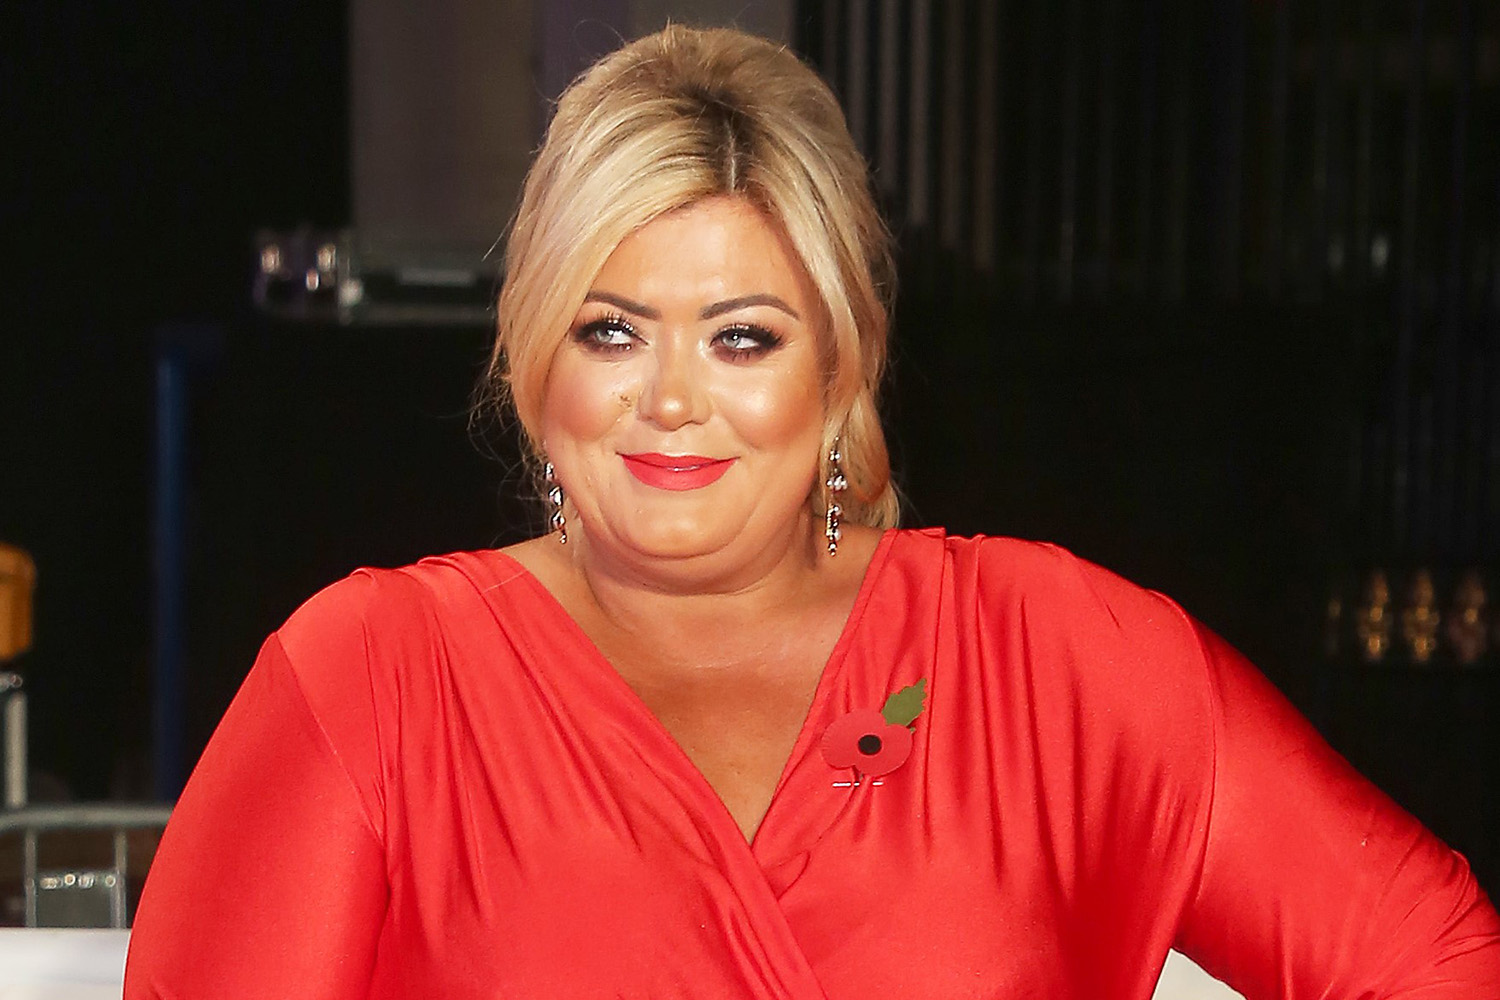 Gemma Collins stuns fans as she shows off weight loss in mini dress